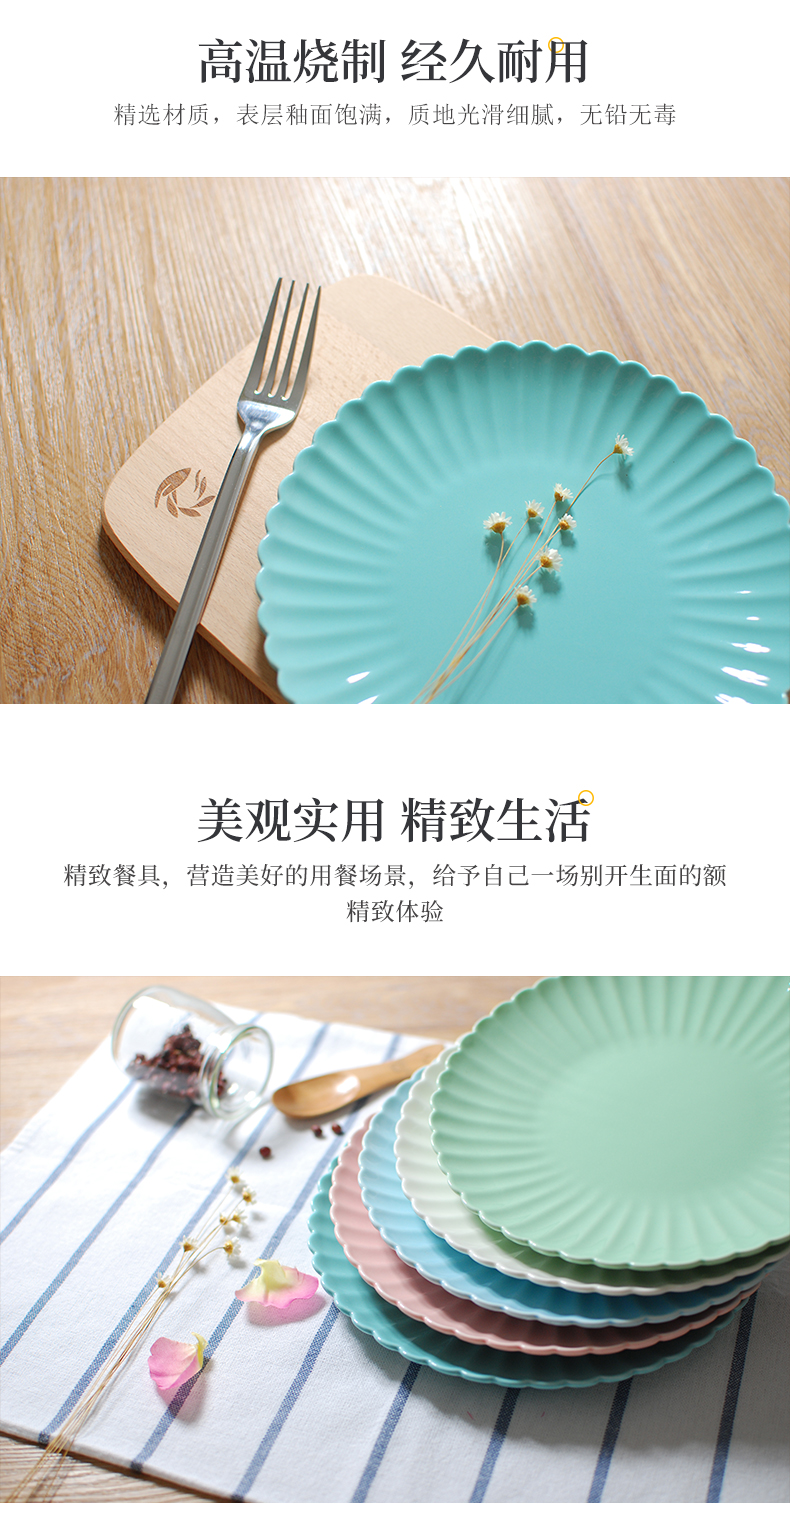 High ins do old vintage white by pan dinner plate tableware of pottery and porcelain Japanese household food all the plates